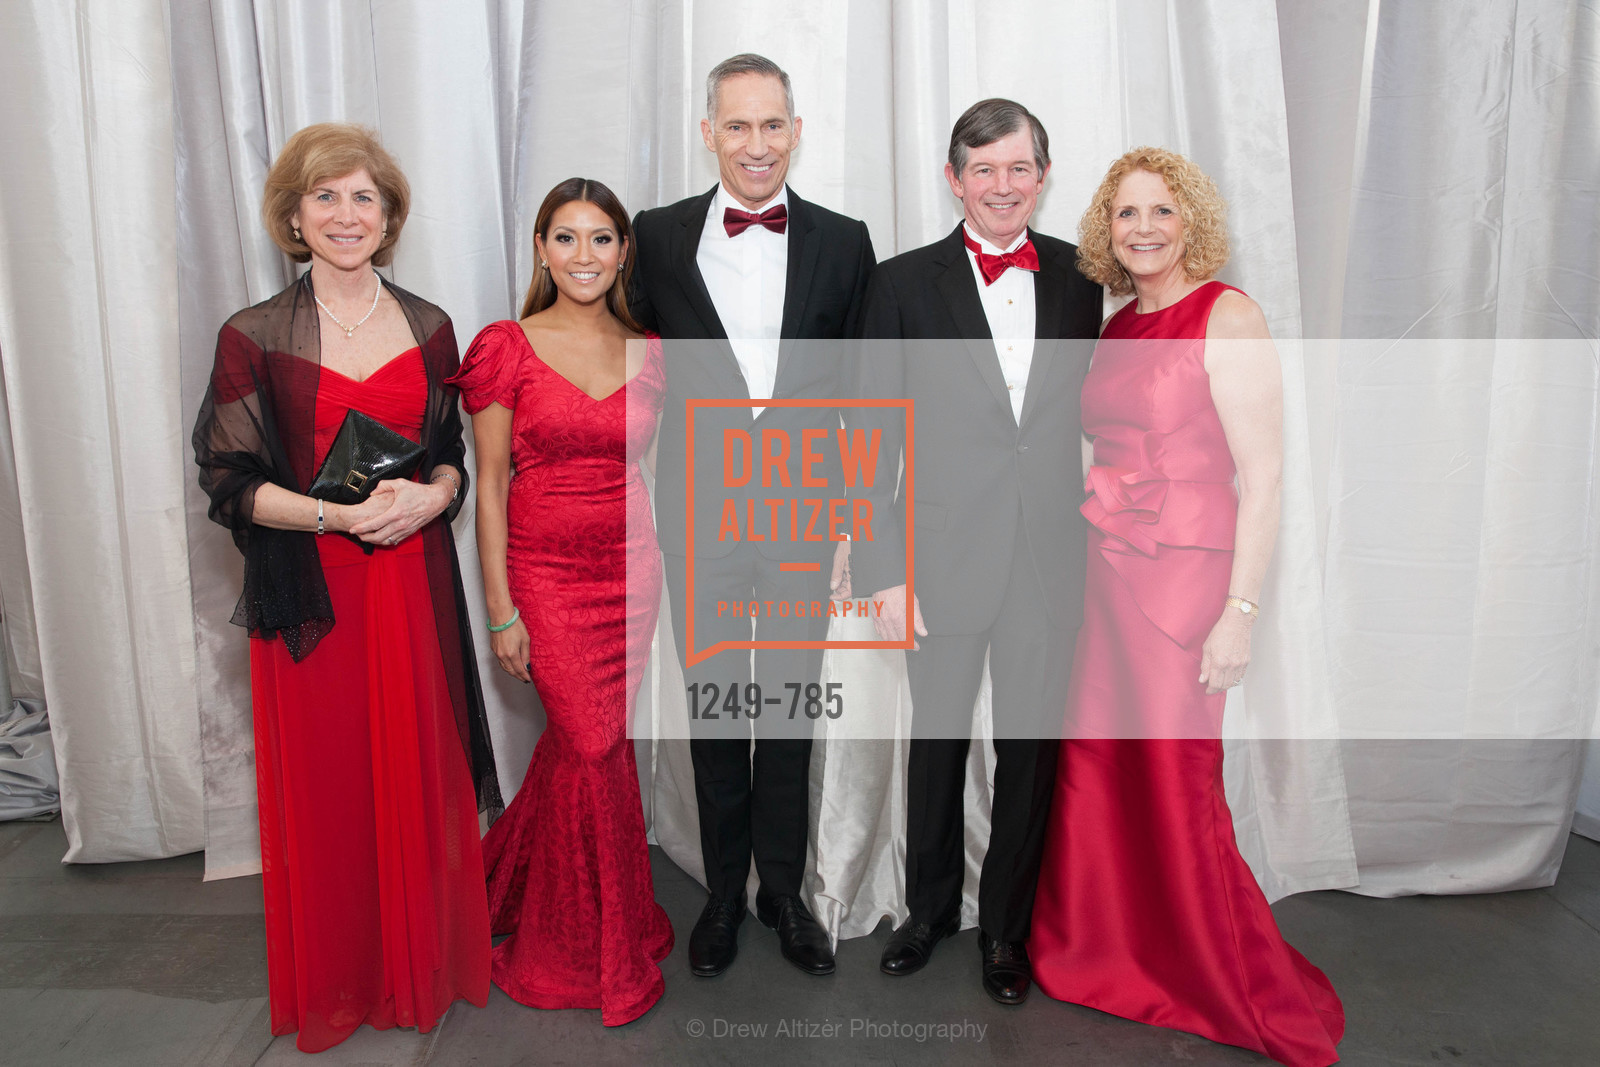 Gail McGovern, Lillian Phan, Mark Cloutier, Anthony Earley, Sarah Earley, 2015 RED CROSS Gala, US, April 11th, 2015,Drew Altizer, Drew Altizer Photography, full-service agency, private events, San Francisco photographer, photographer california